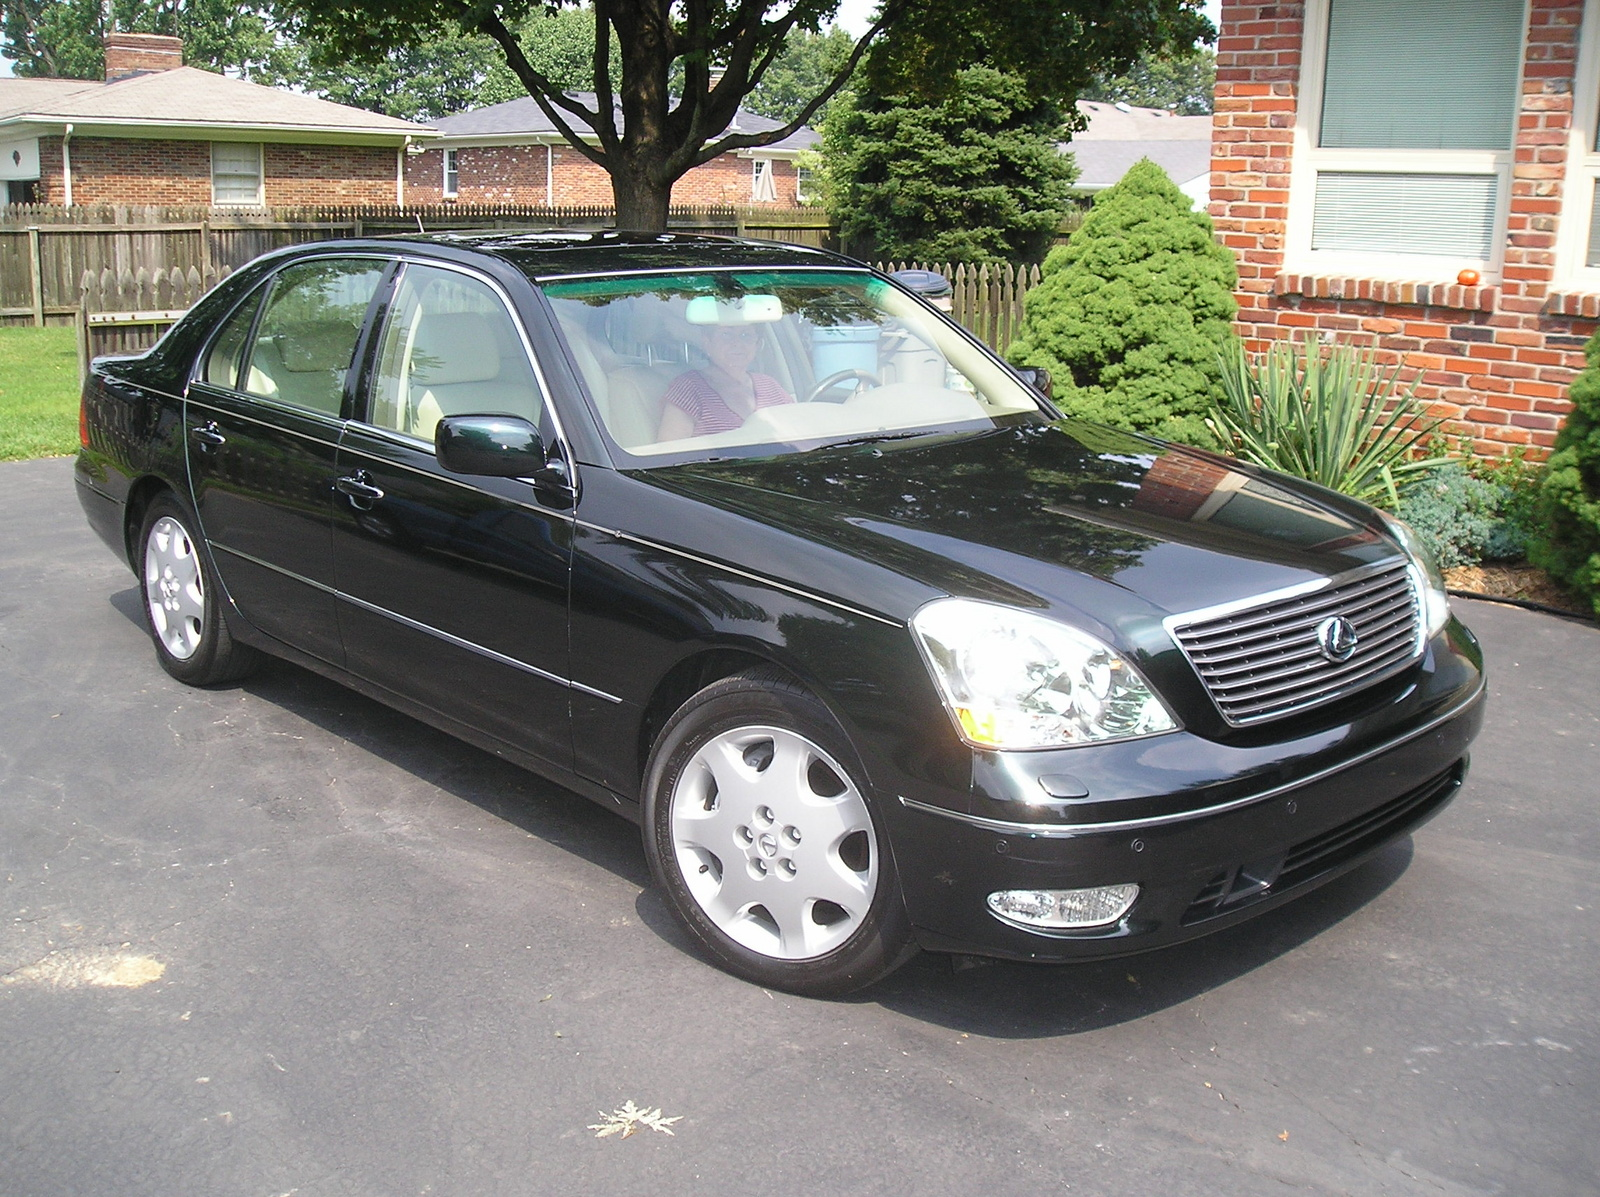 Lexus LS 430 2002 photo - 11